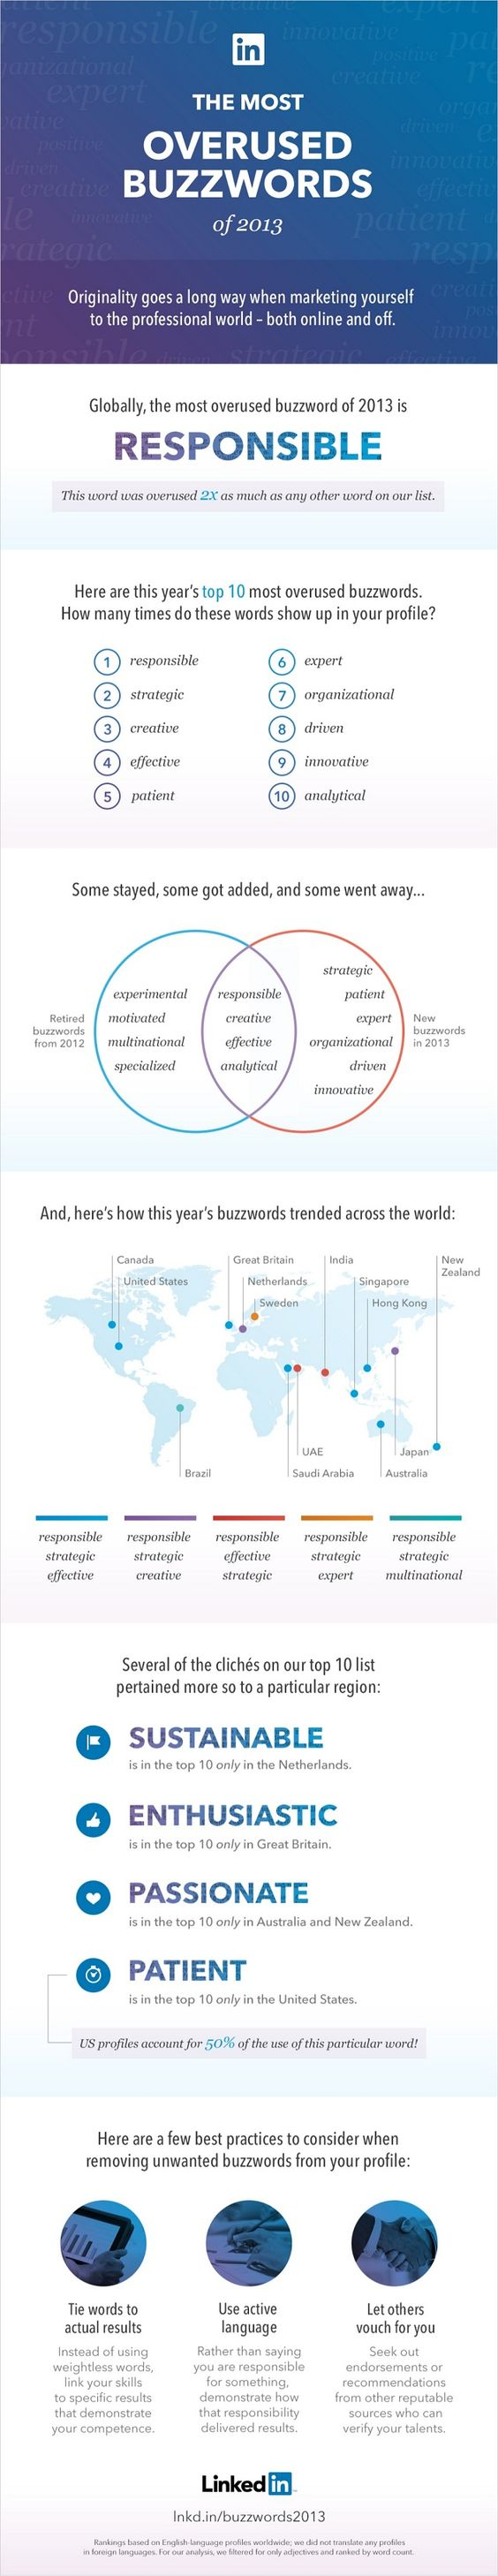 LinkedIn's Top 'Misused' Keywords [Infographic] - arabiangazette.com. We put some of these words in our blog entry: http://www.robbdigital.com/creating-a-great-first-impression-what-your-linkedin-profile-should-include/